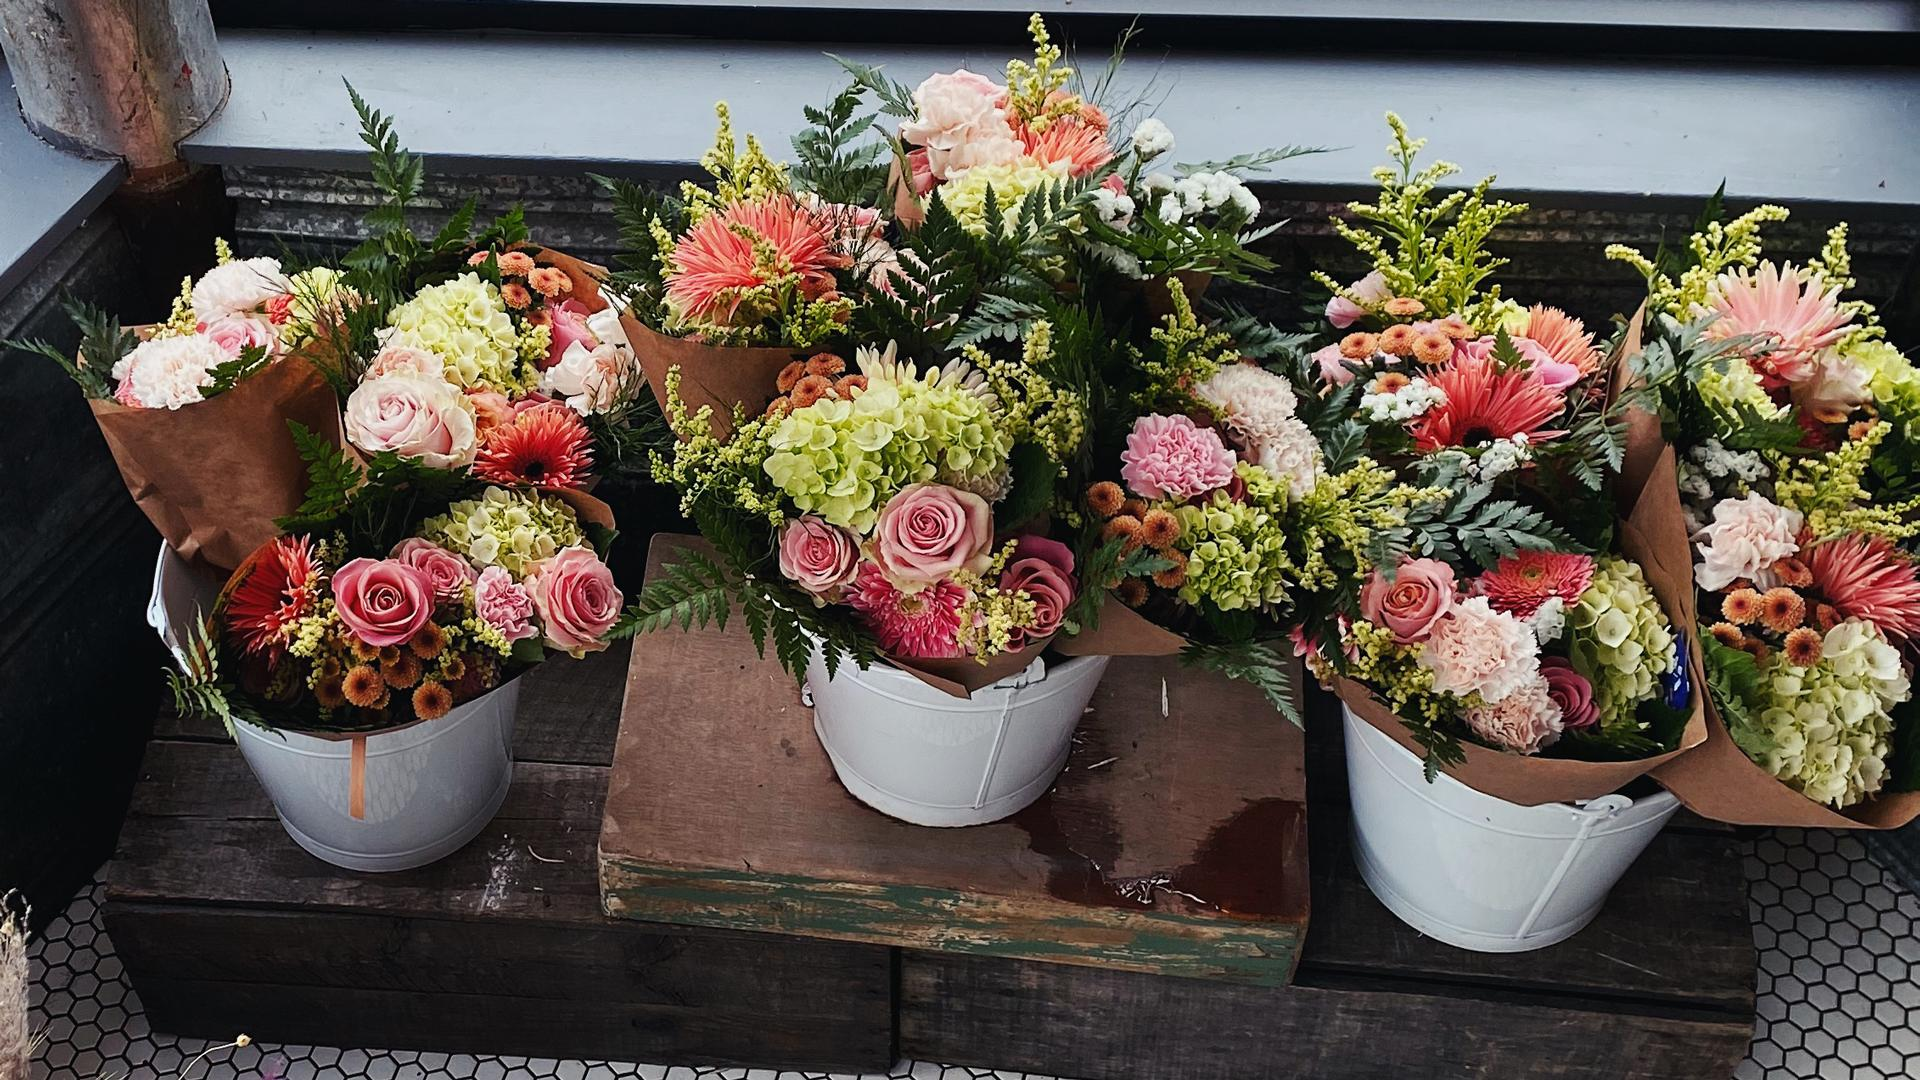 Safehouse Coffee, greengrocer, café, art shop and community hub | Flowers at Safehouse Coffee